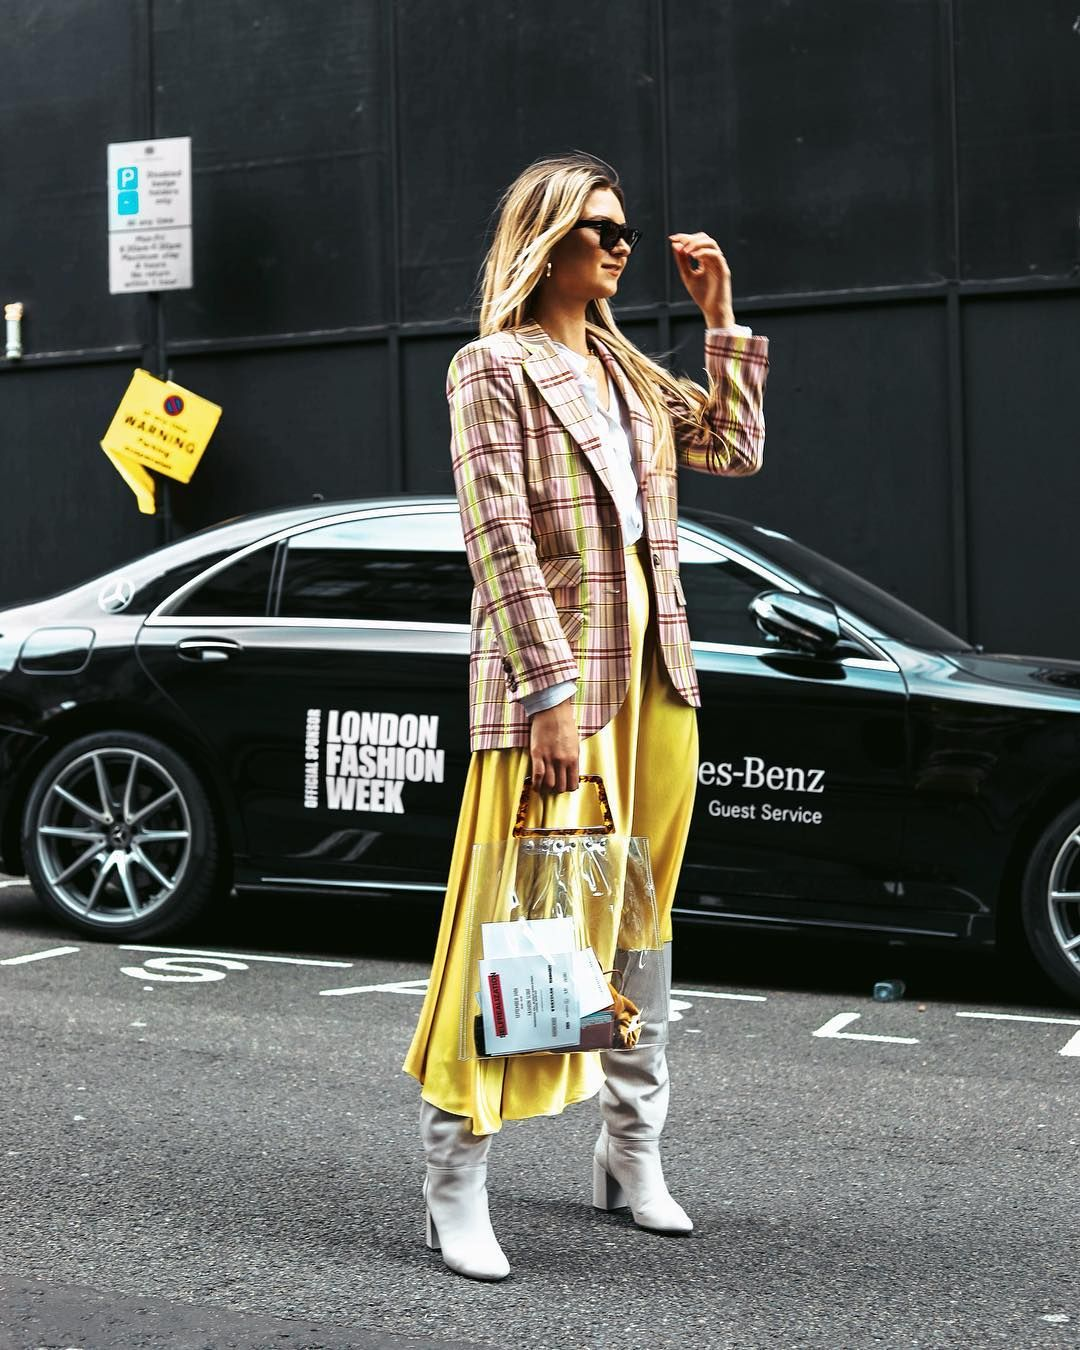 32 London Fashion Week Bloggers Outfits Street Style - THECLCK